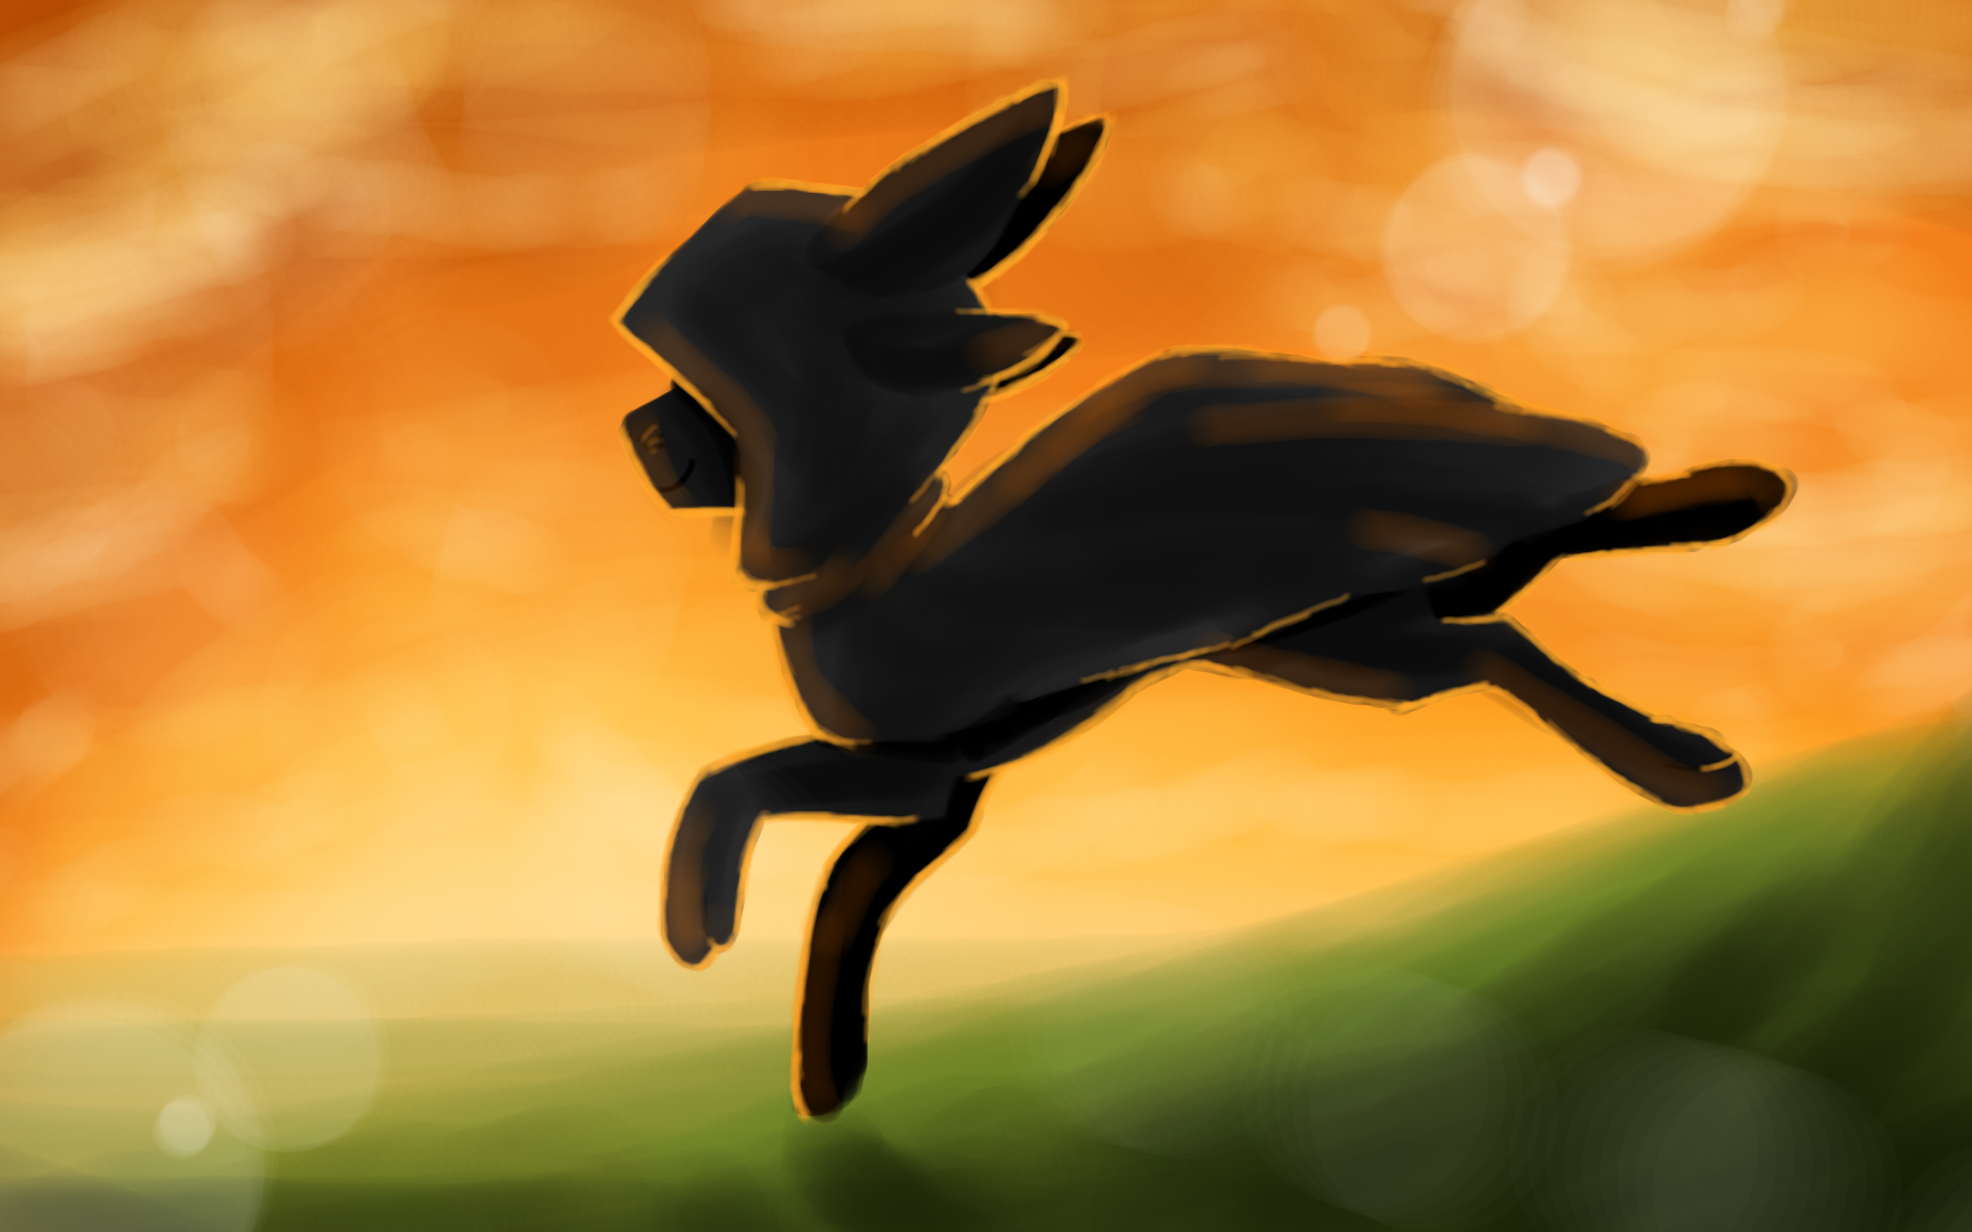 Run by the Sun by CoffeeAddictedDragon